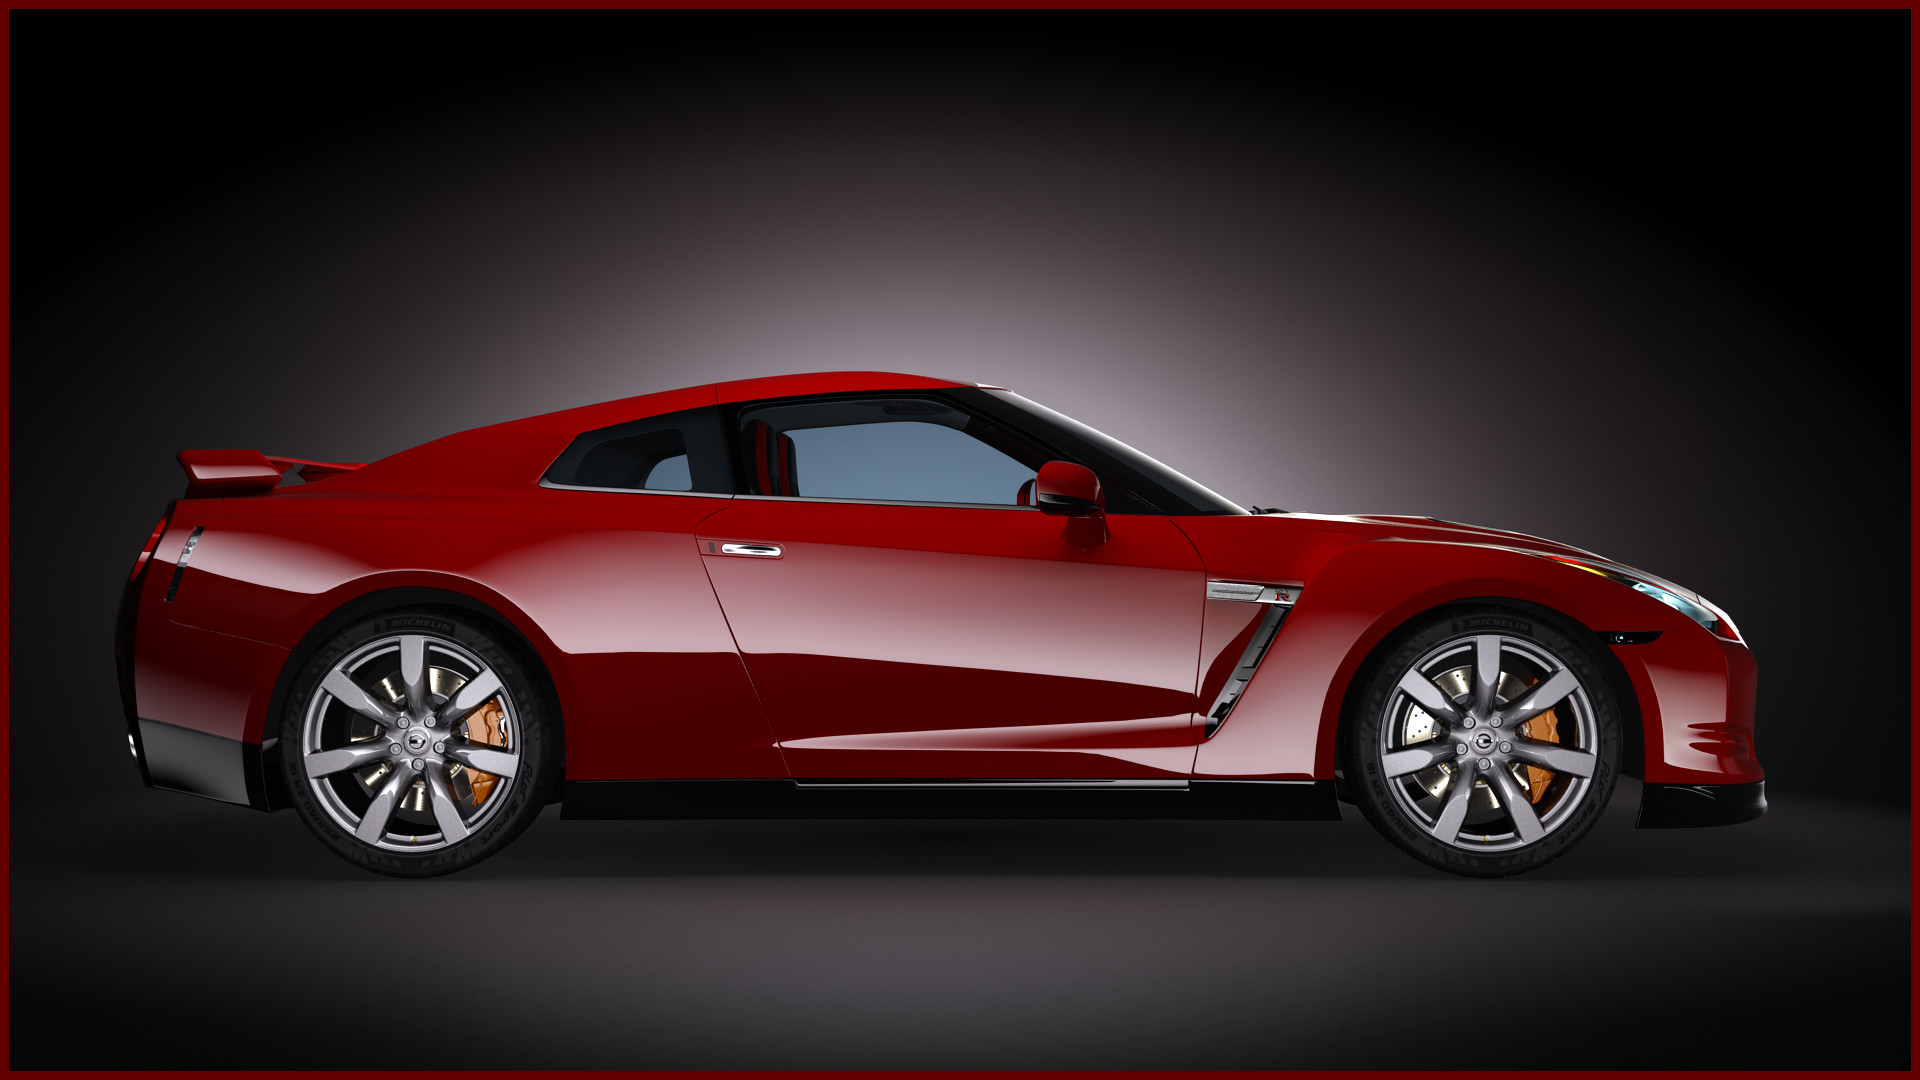 2009 Nissan Gtr #14 – Red Nissan GT-R Wallpaper 1920X1080